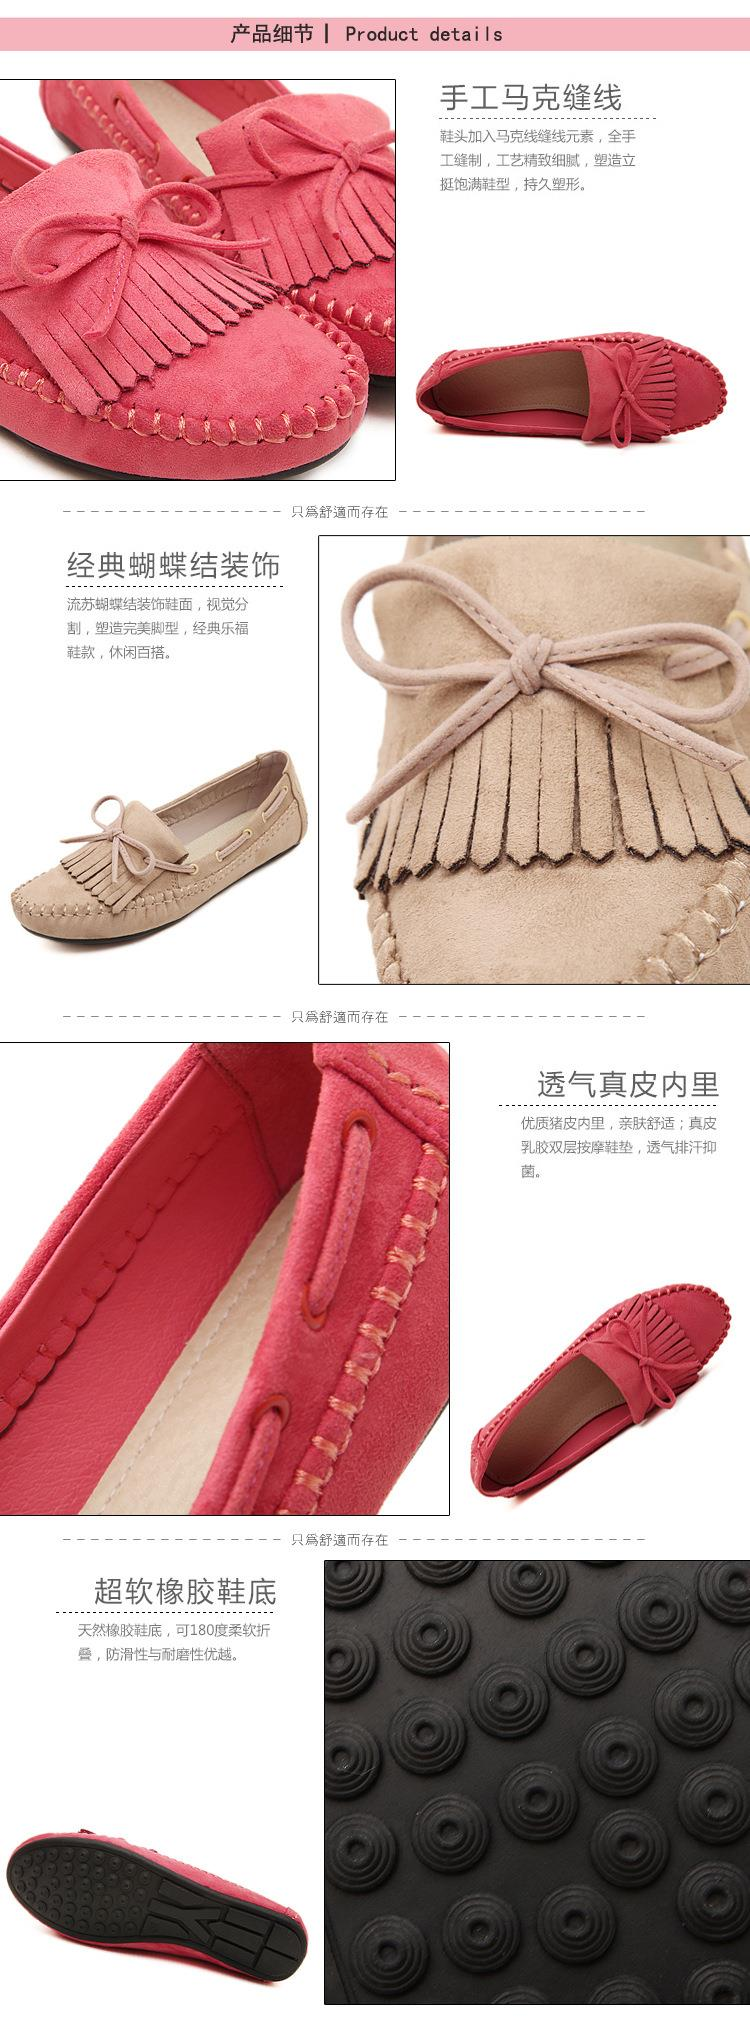 2016 Shoes Woman PU Leather Women Shoes Flats 4 Colors Buckle Loafers Slip On Women's Flat Shoes Moccasins Plus Size